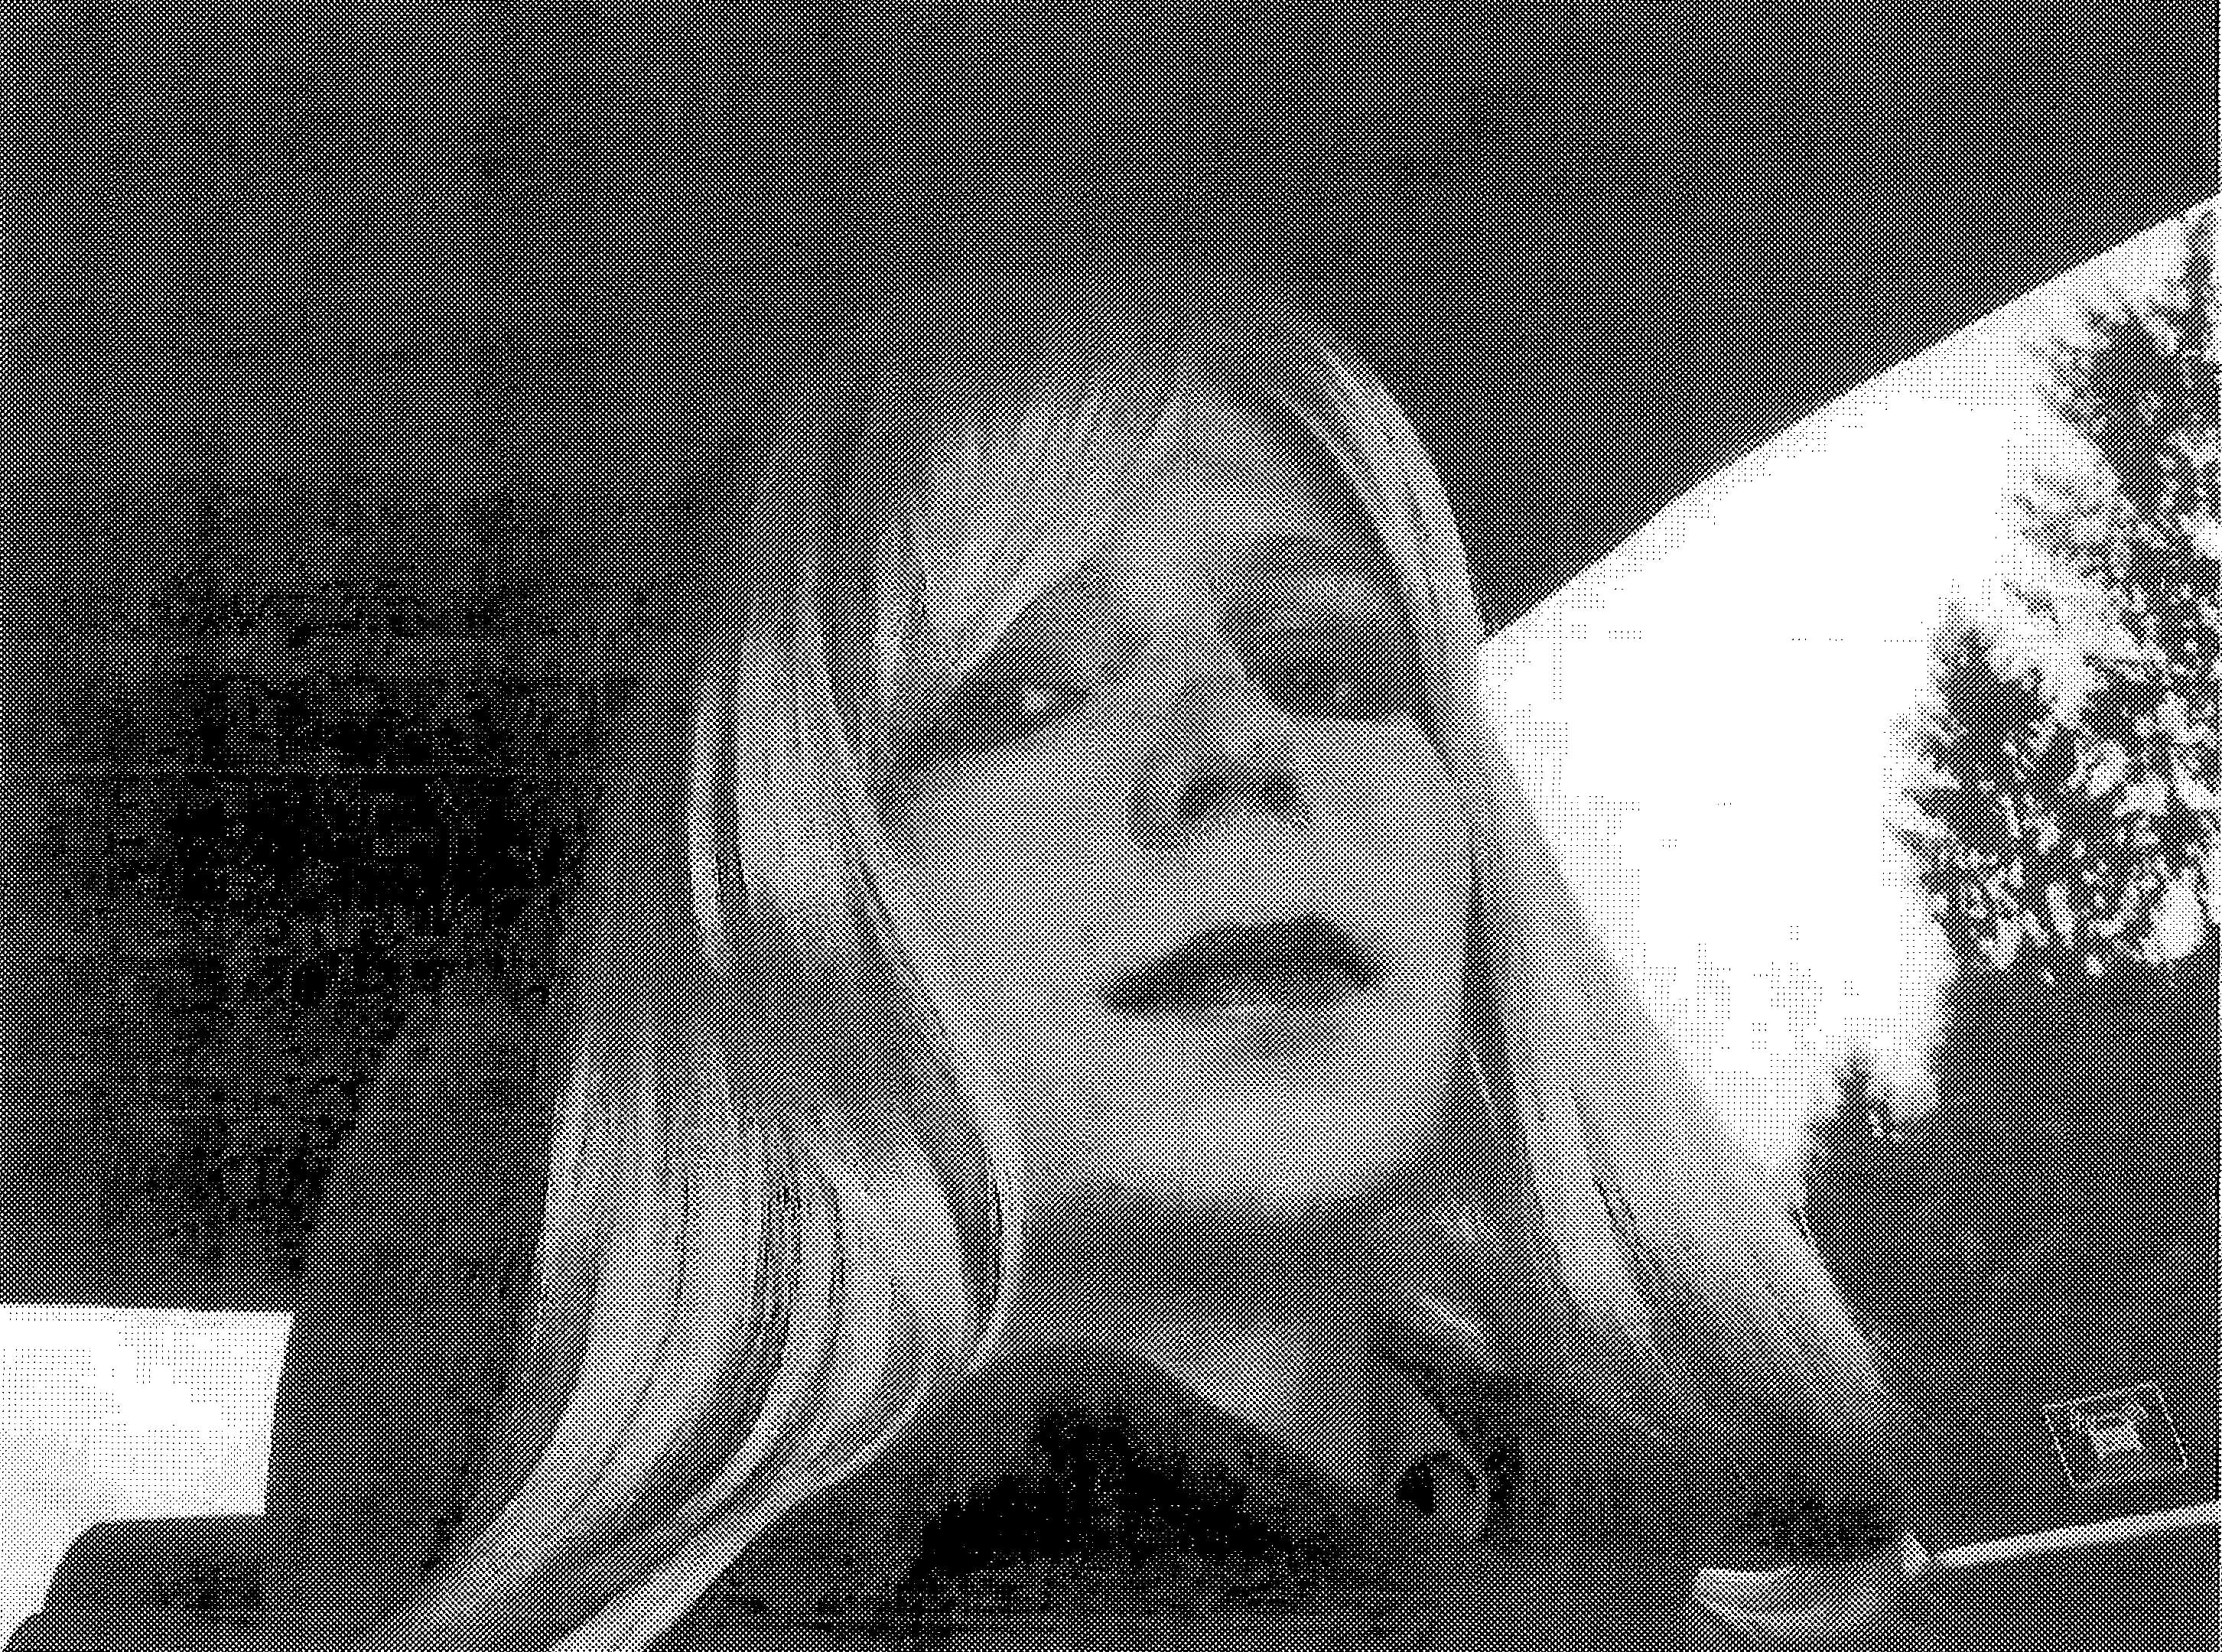 Chelsea Manning is pictured dressed as a woman in this 2010 photograph obtained on August 14, 2013